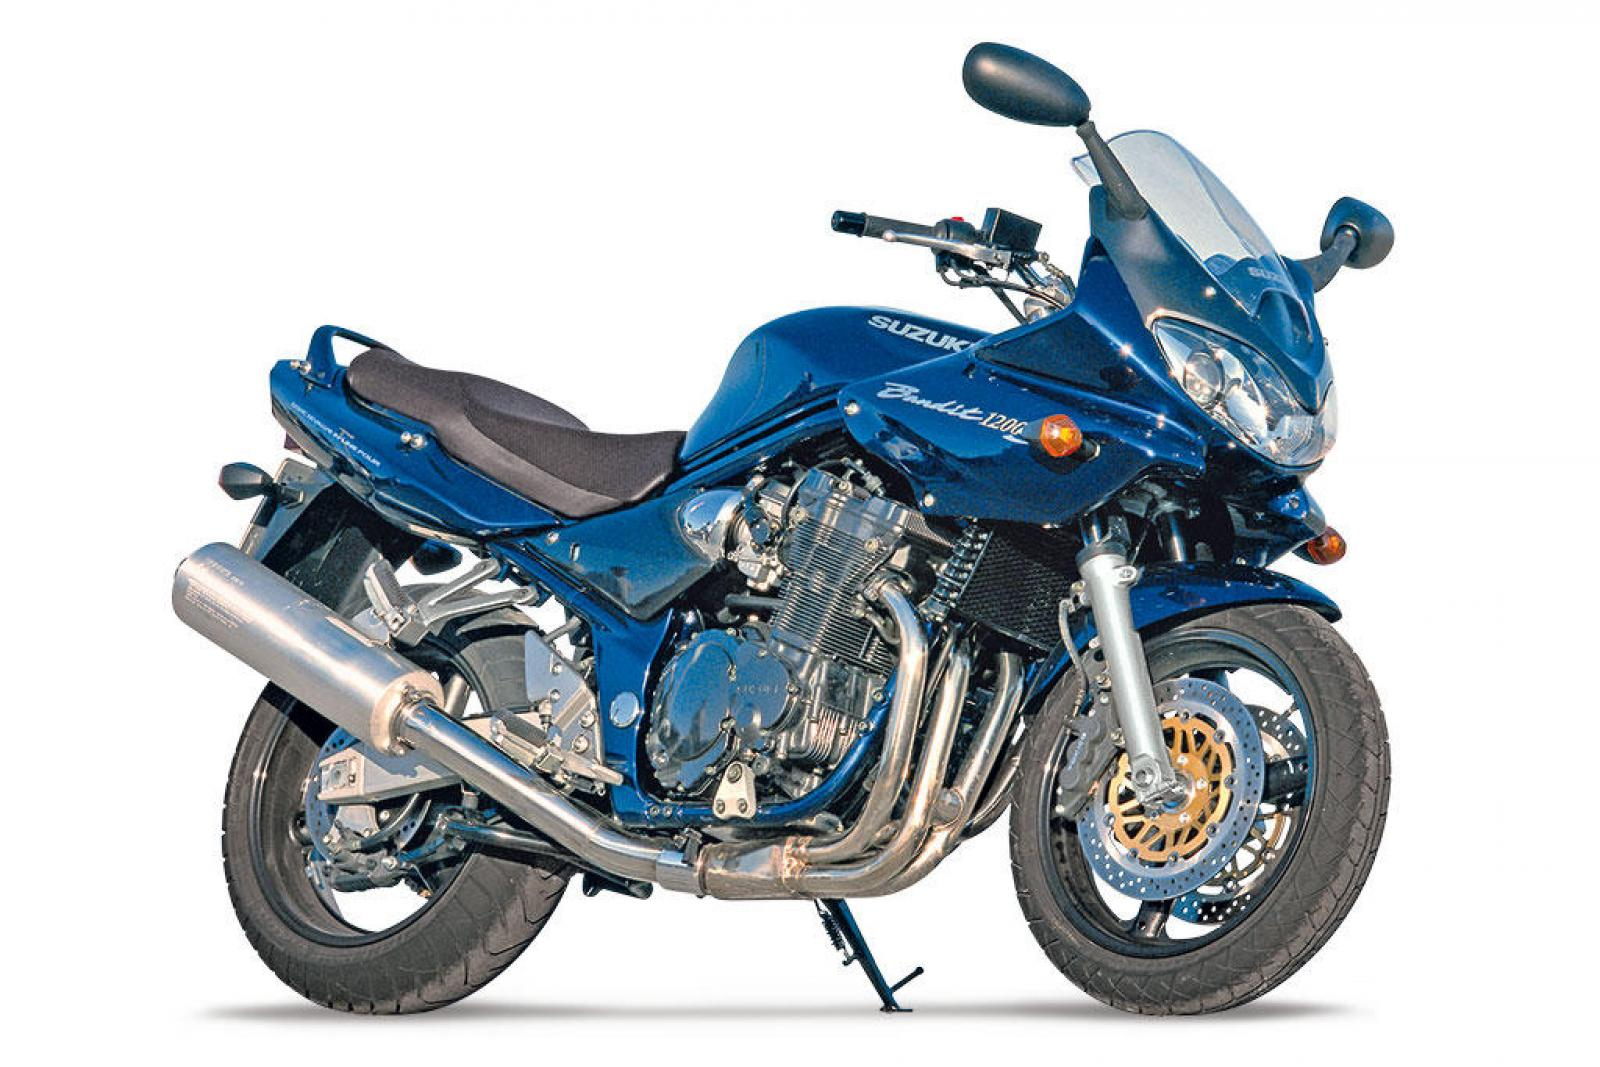 Suzuki 1200 photo - 1